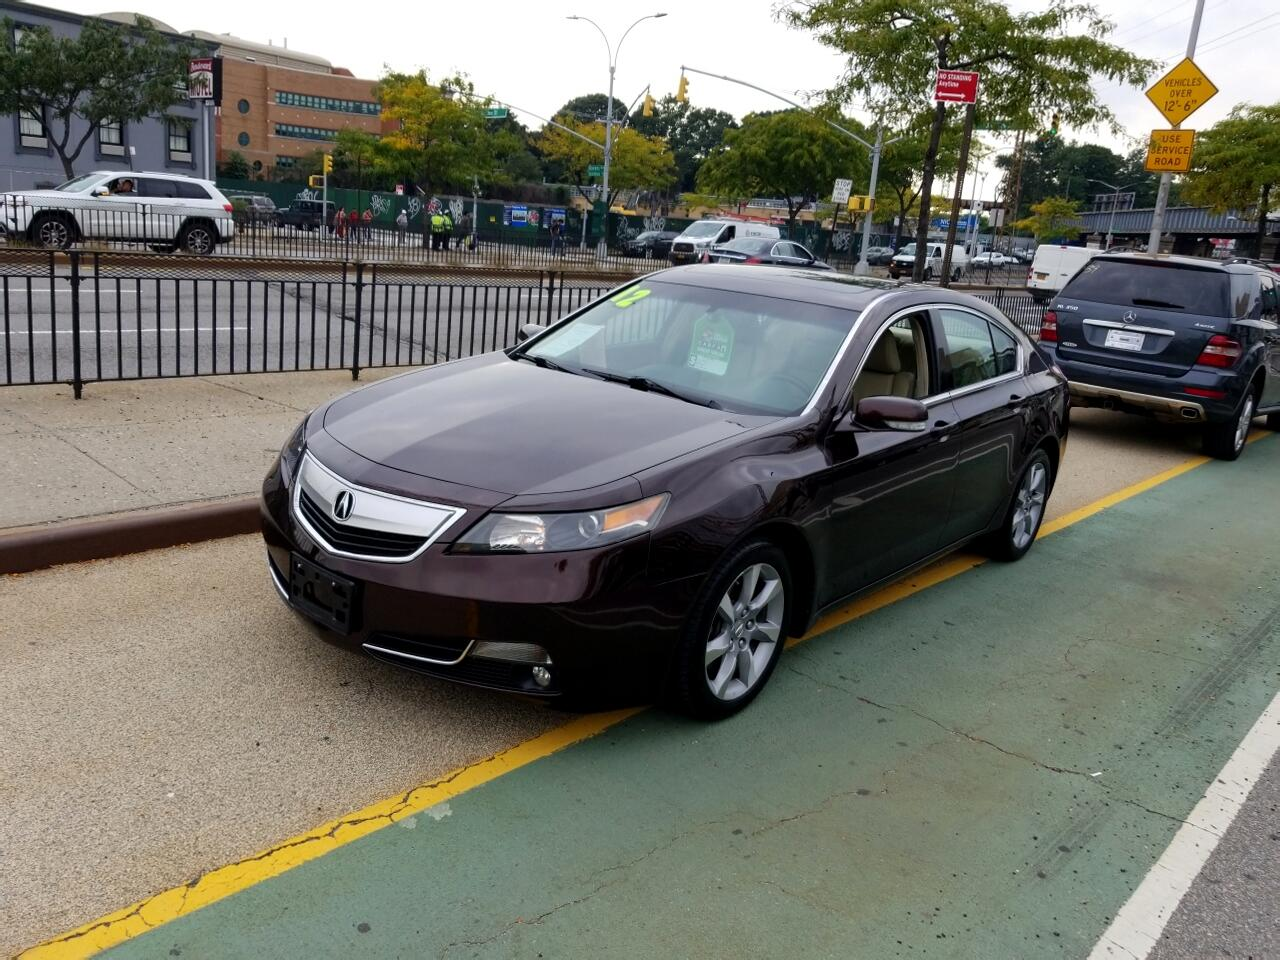 Used Cars For Sale Elmhurst Ny 11373 Buy Sell Inc 02 Toyota Camry Fuel Filter Location 2012 Acura Tl 4dr Sdn Auto